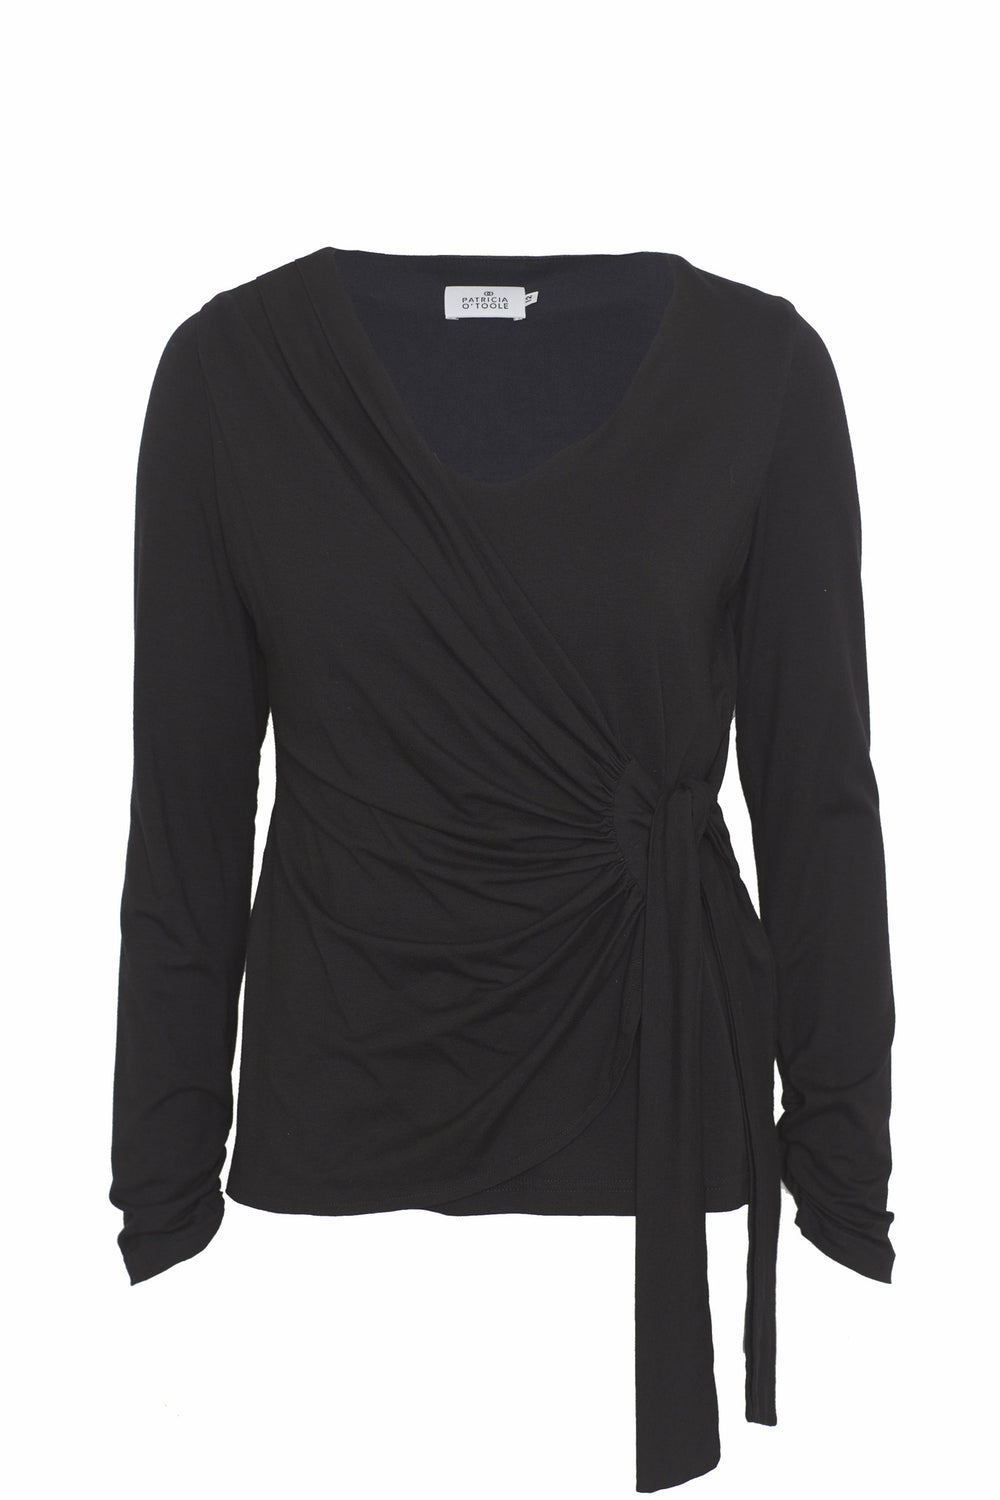 Grainne Wrap Top